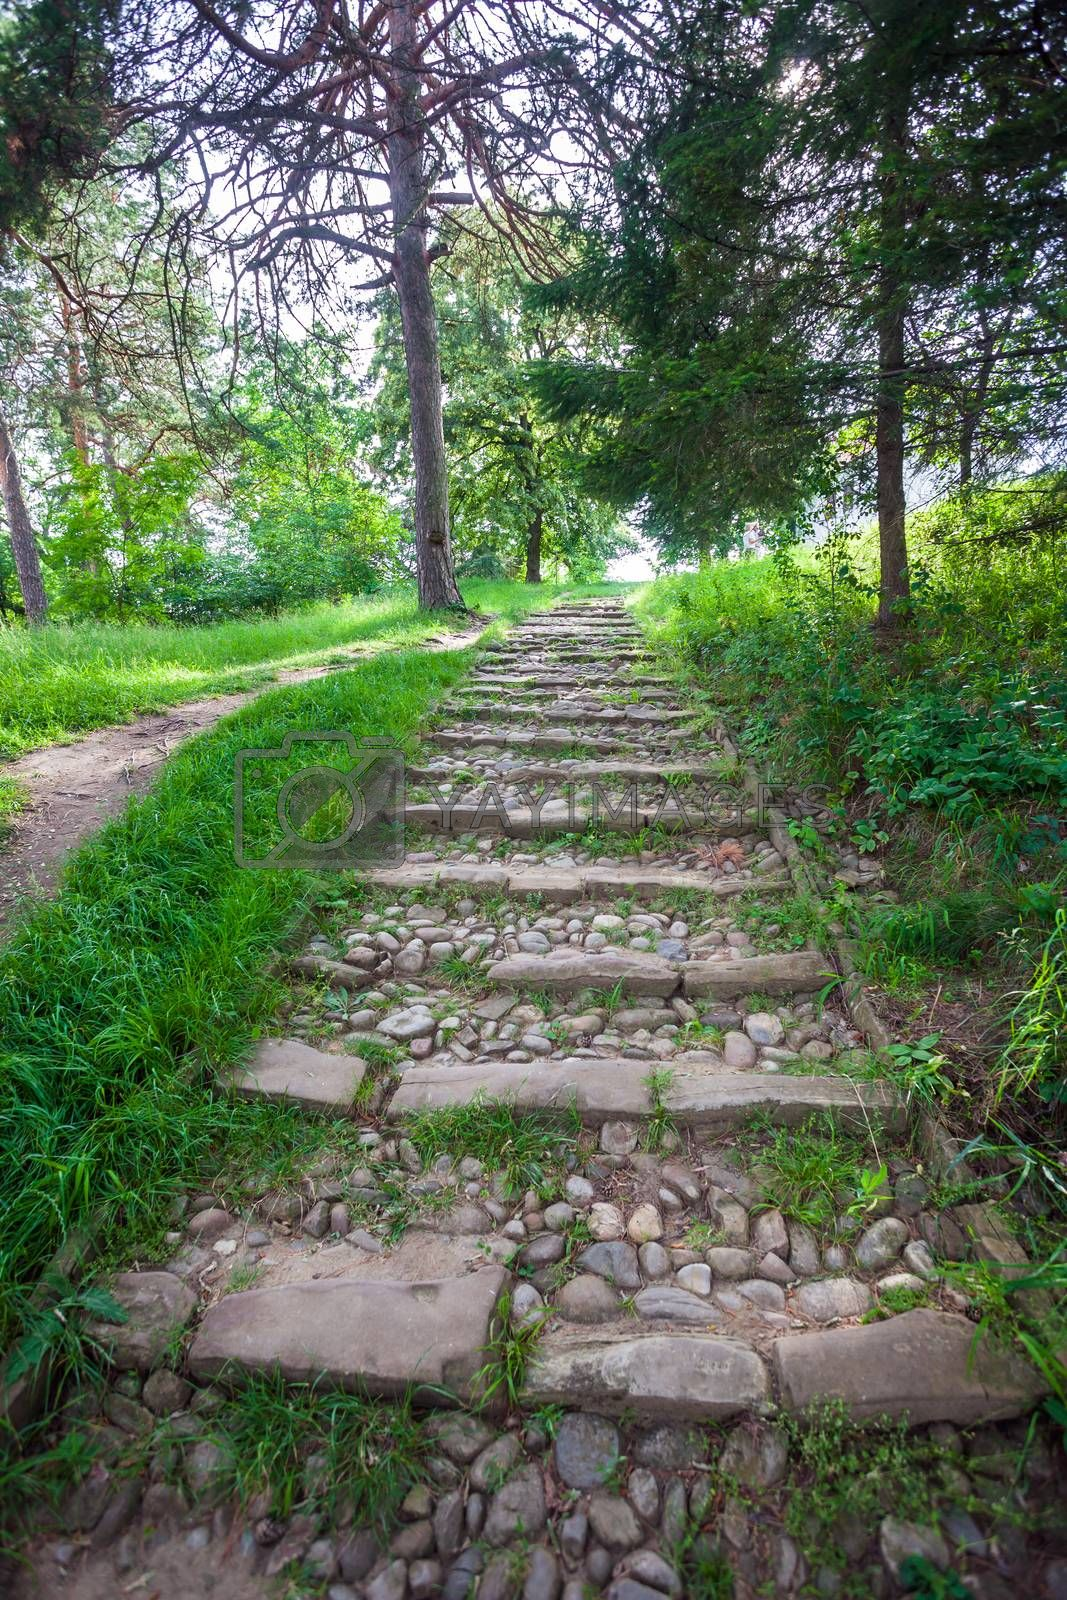 River rough stones paved stairs